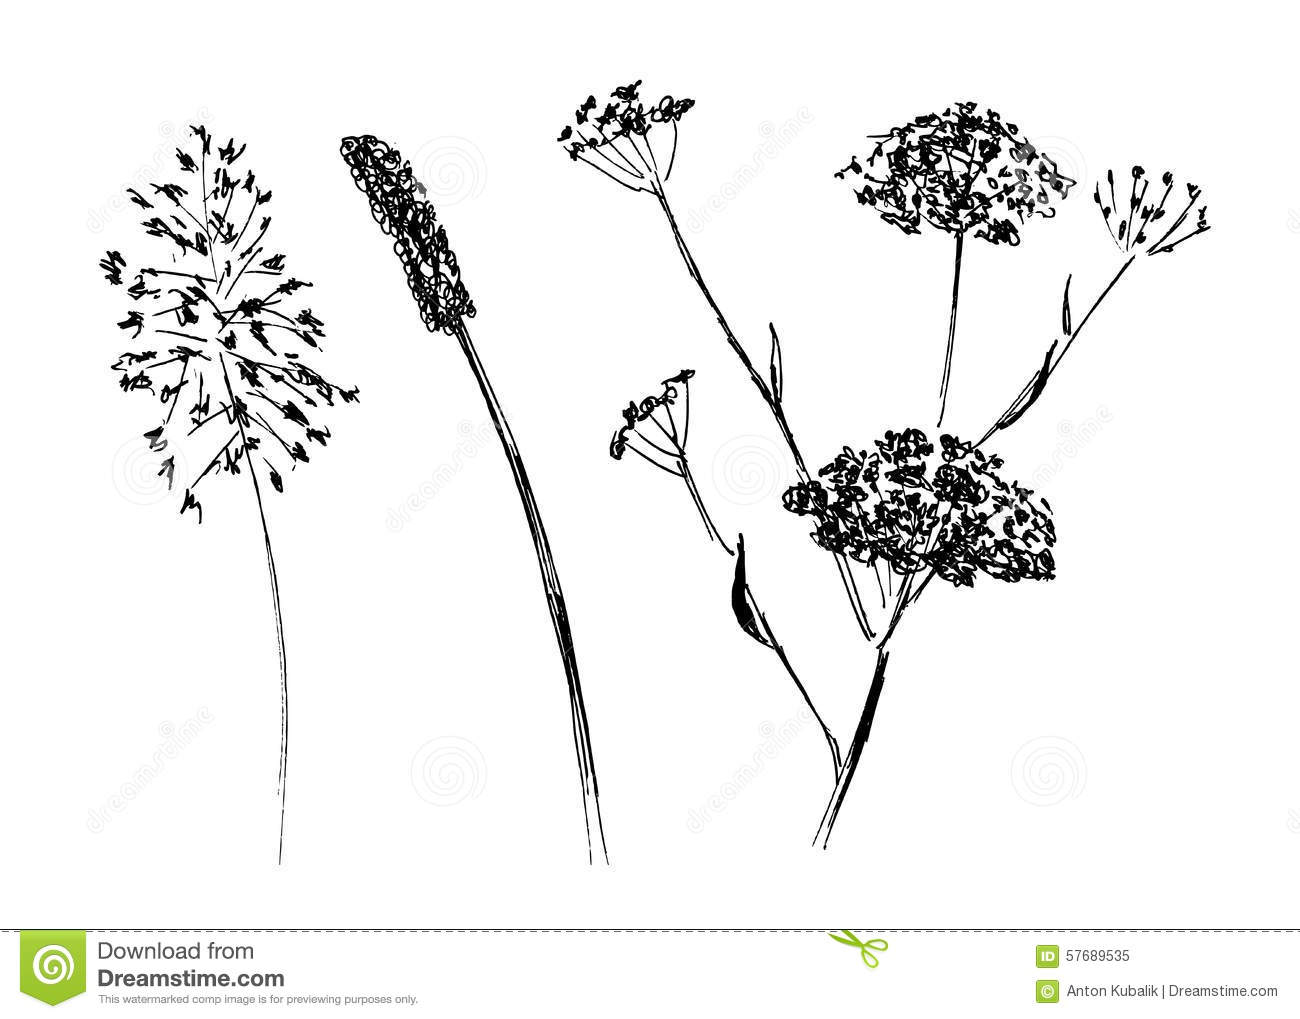 Dry Meadow Plants Stock Photo - Image: 48653196